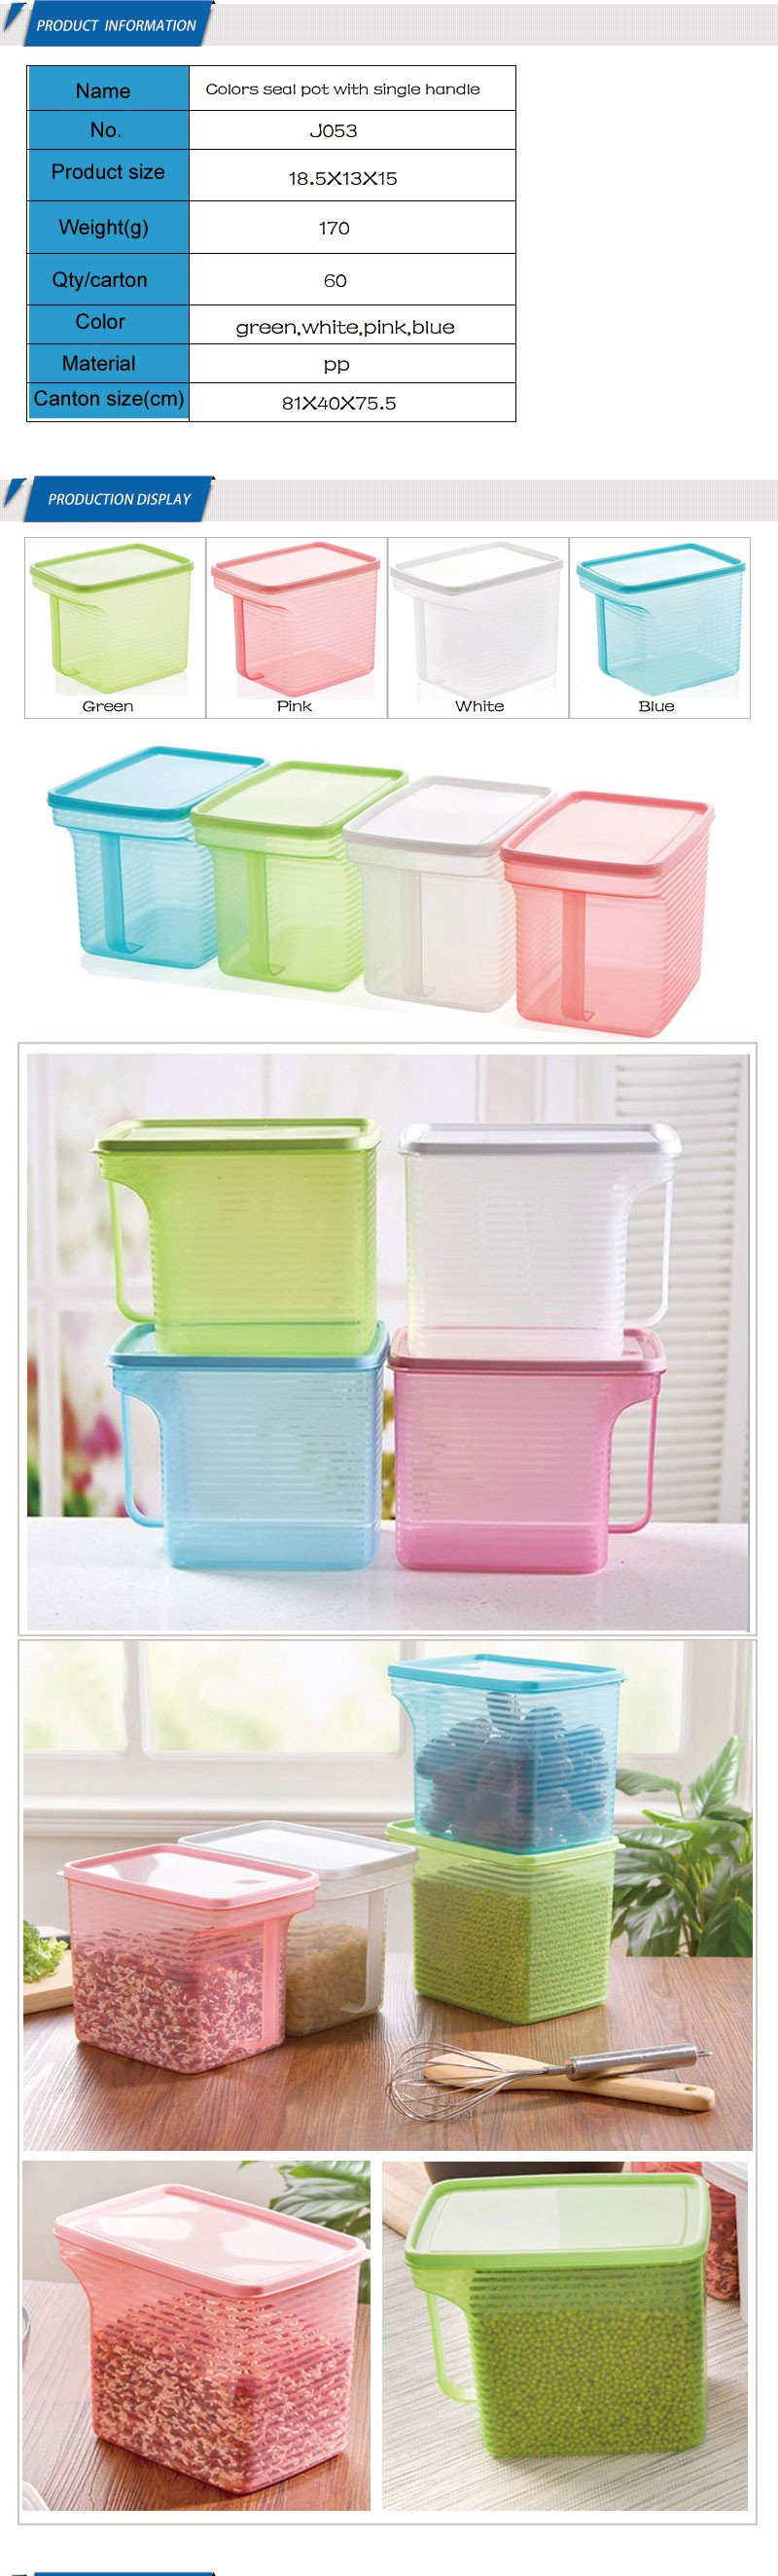 PP container for flour rice cookie sugar Kitchen Food Crisper container refrigerator small storage box containers with handle